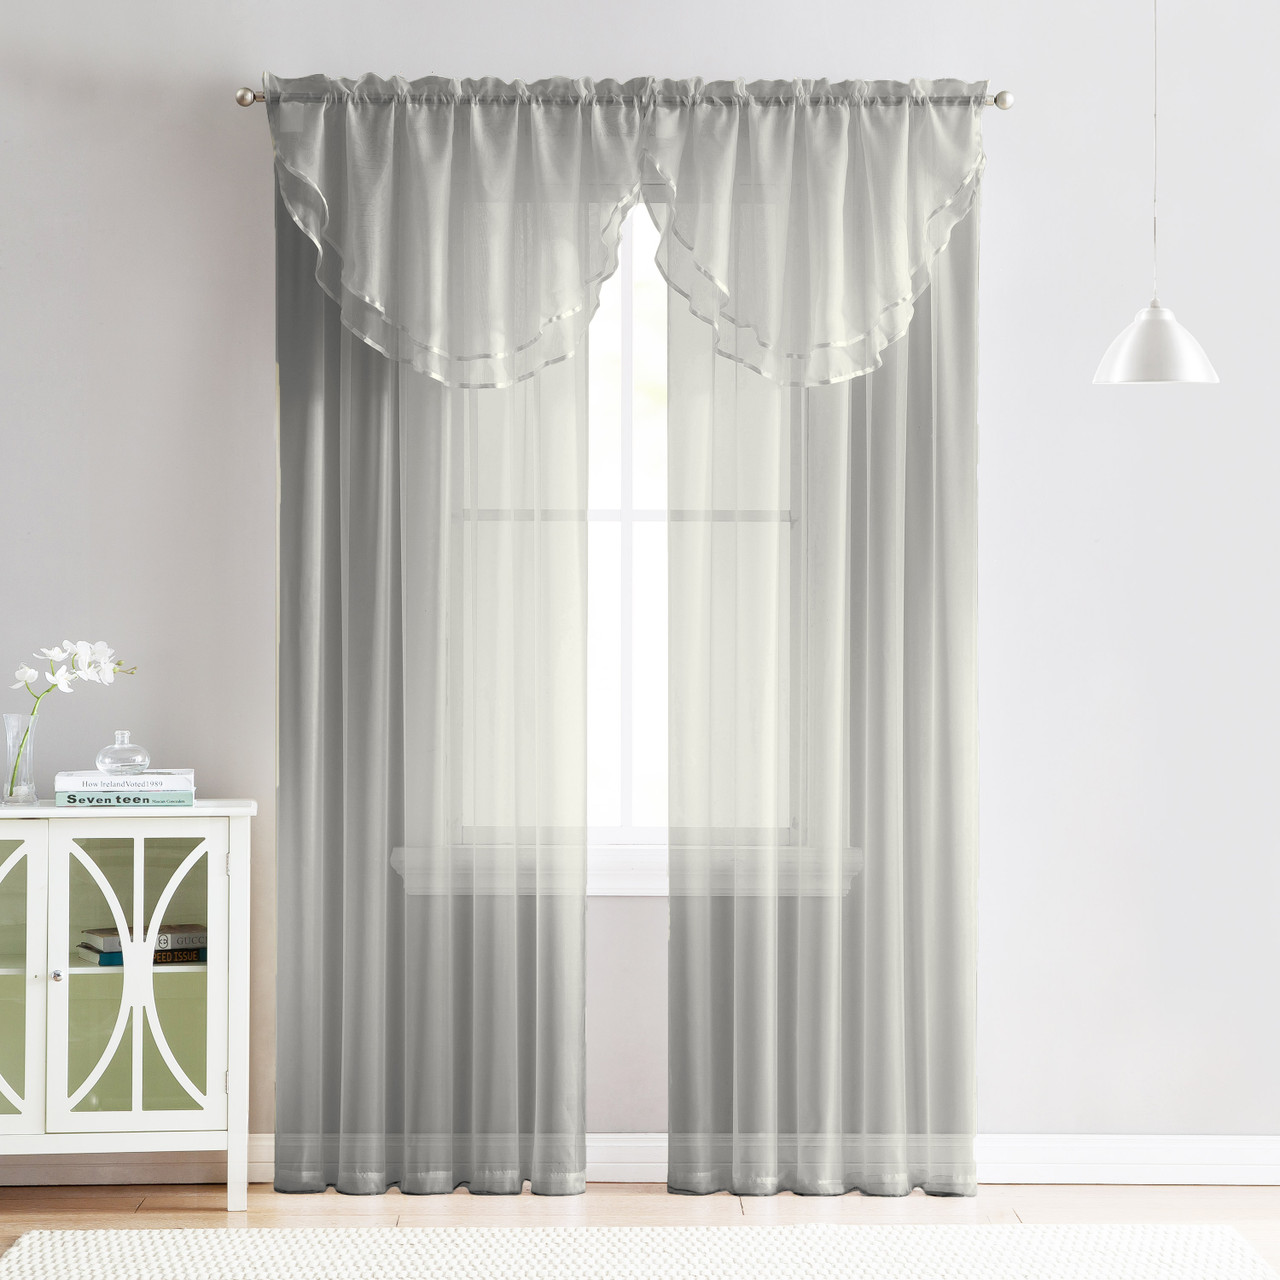 4 Piece Sheer Window Curtain Set For Living Room Dining Room Bay